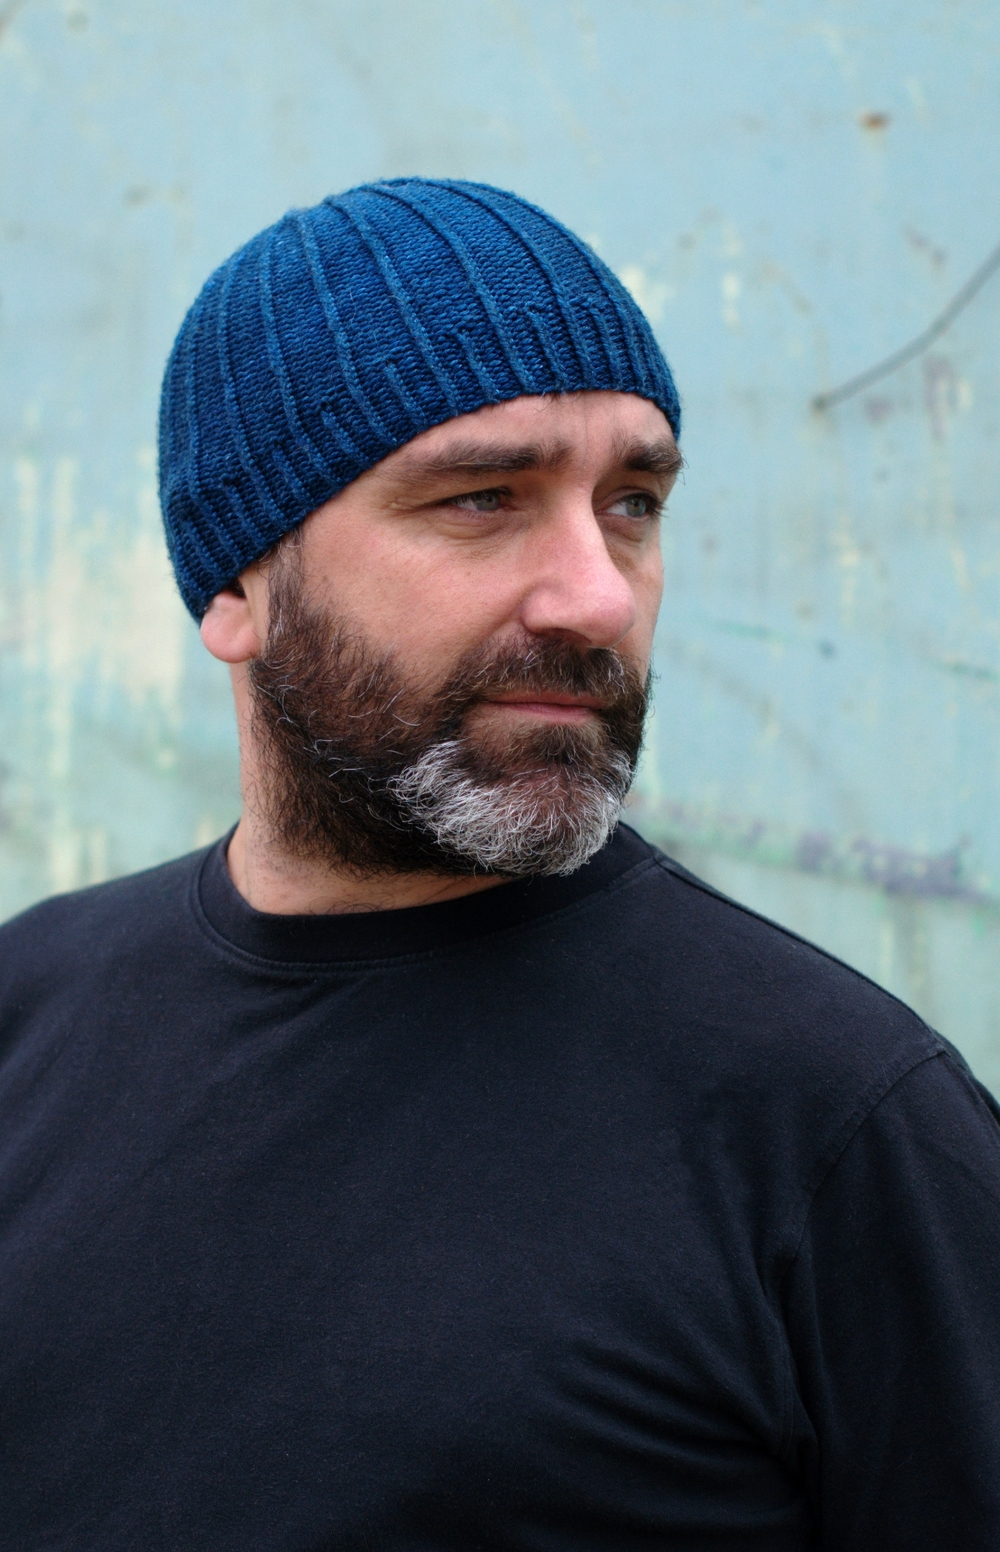 Darkke beanie knitting pattern